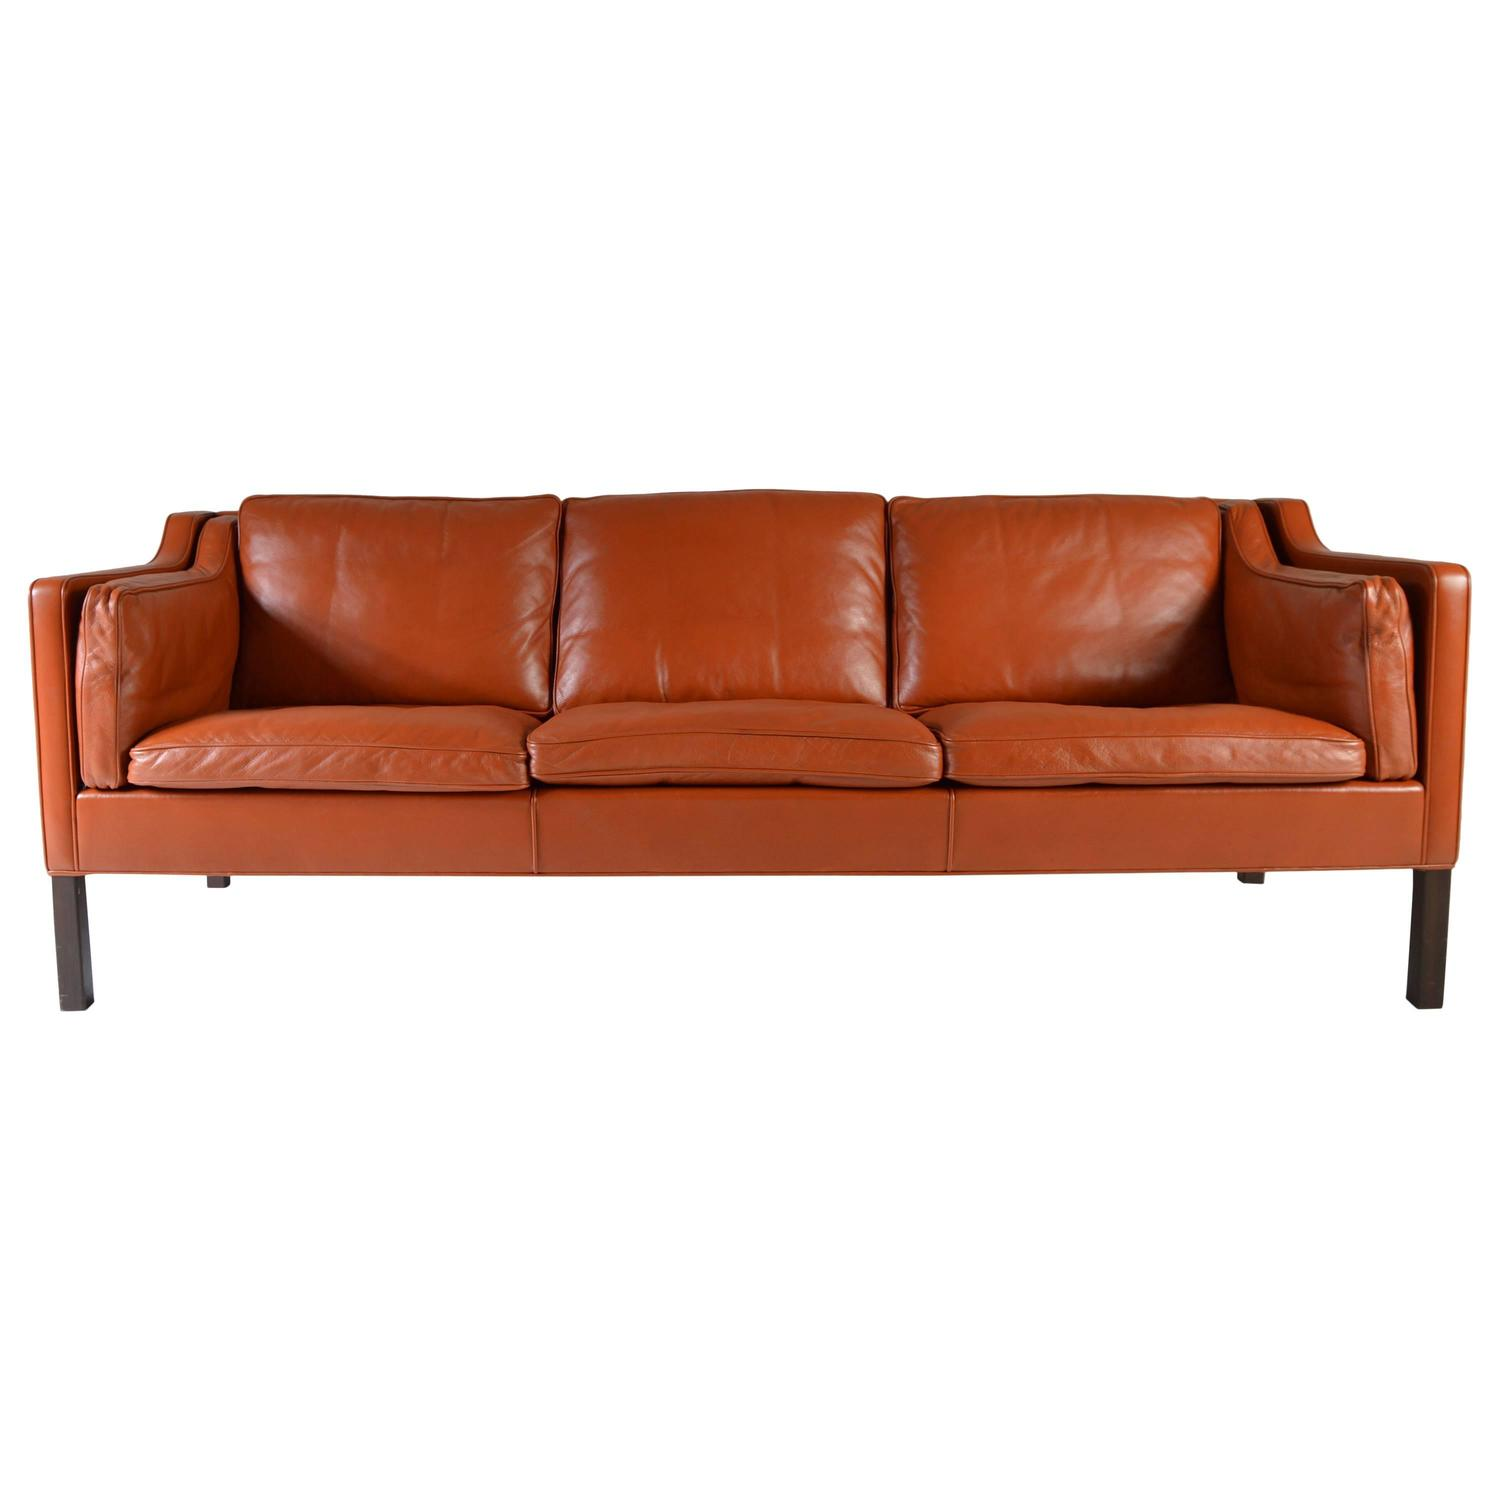 cognac leather sofa by b rge mogensen for fredericia stolefabrik at 1stdibs. Black Bedroom Furniture Sets. Home Design Ideas